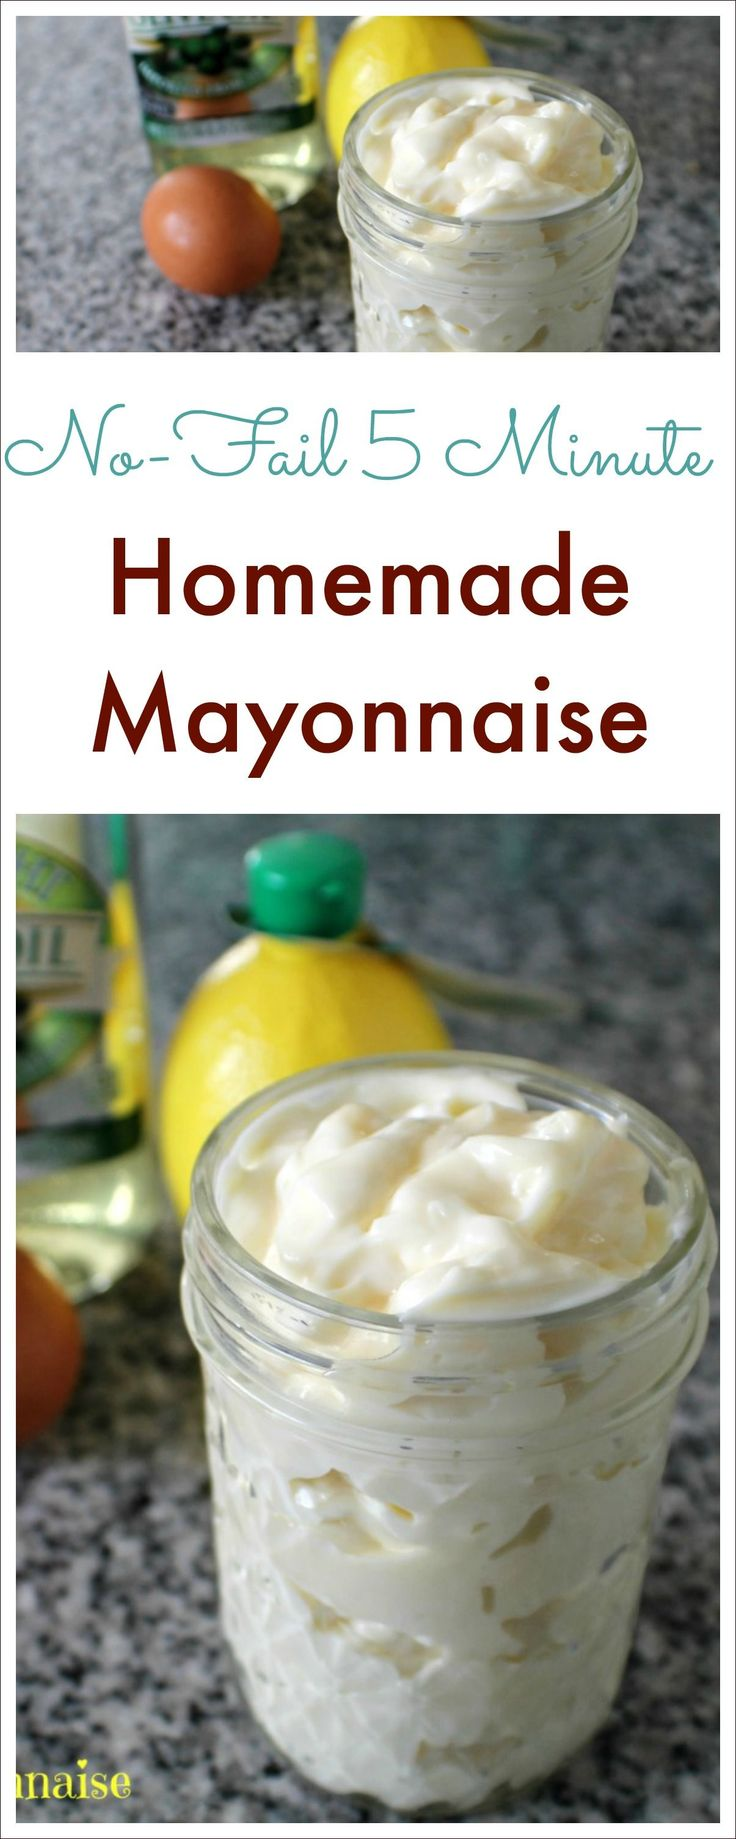 This whole30 approved homemade mayonnaise recipe will change your life! It is light & fluffy with a rich flavor - you will never buy store-bought again!